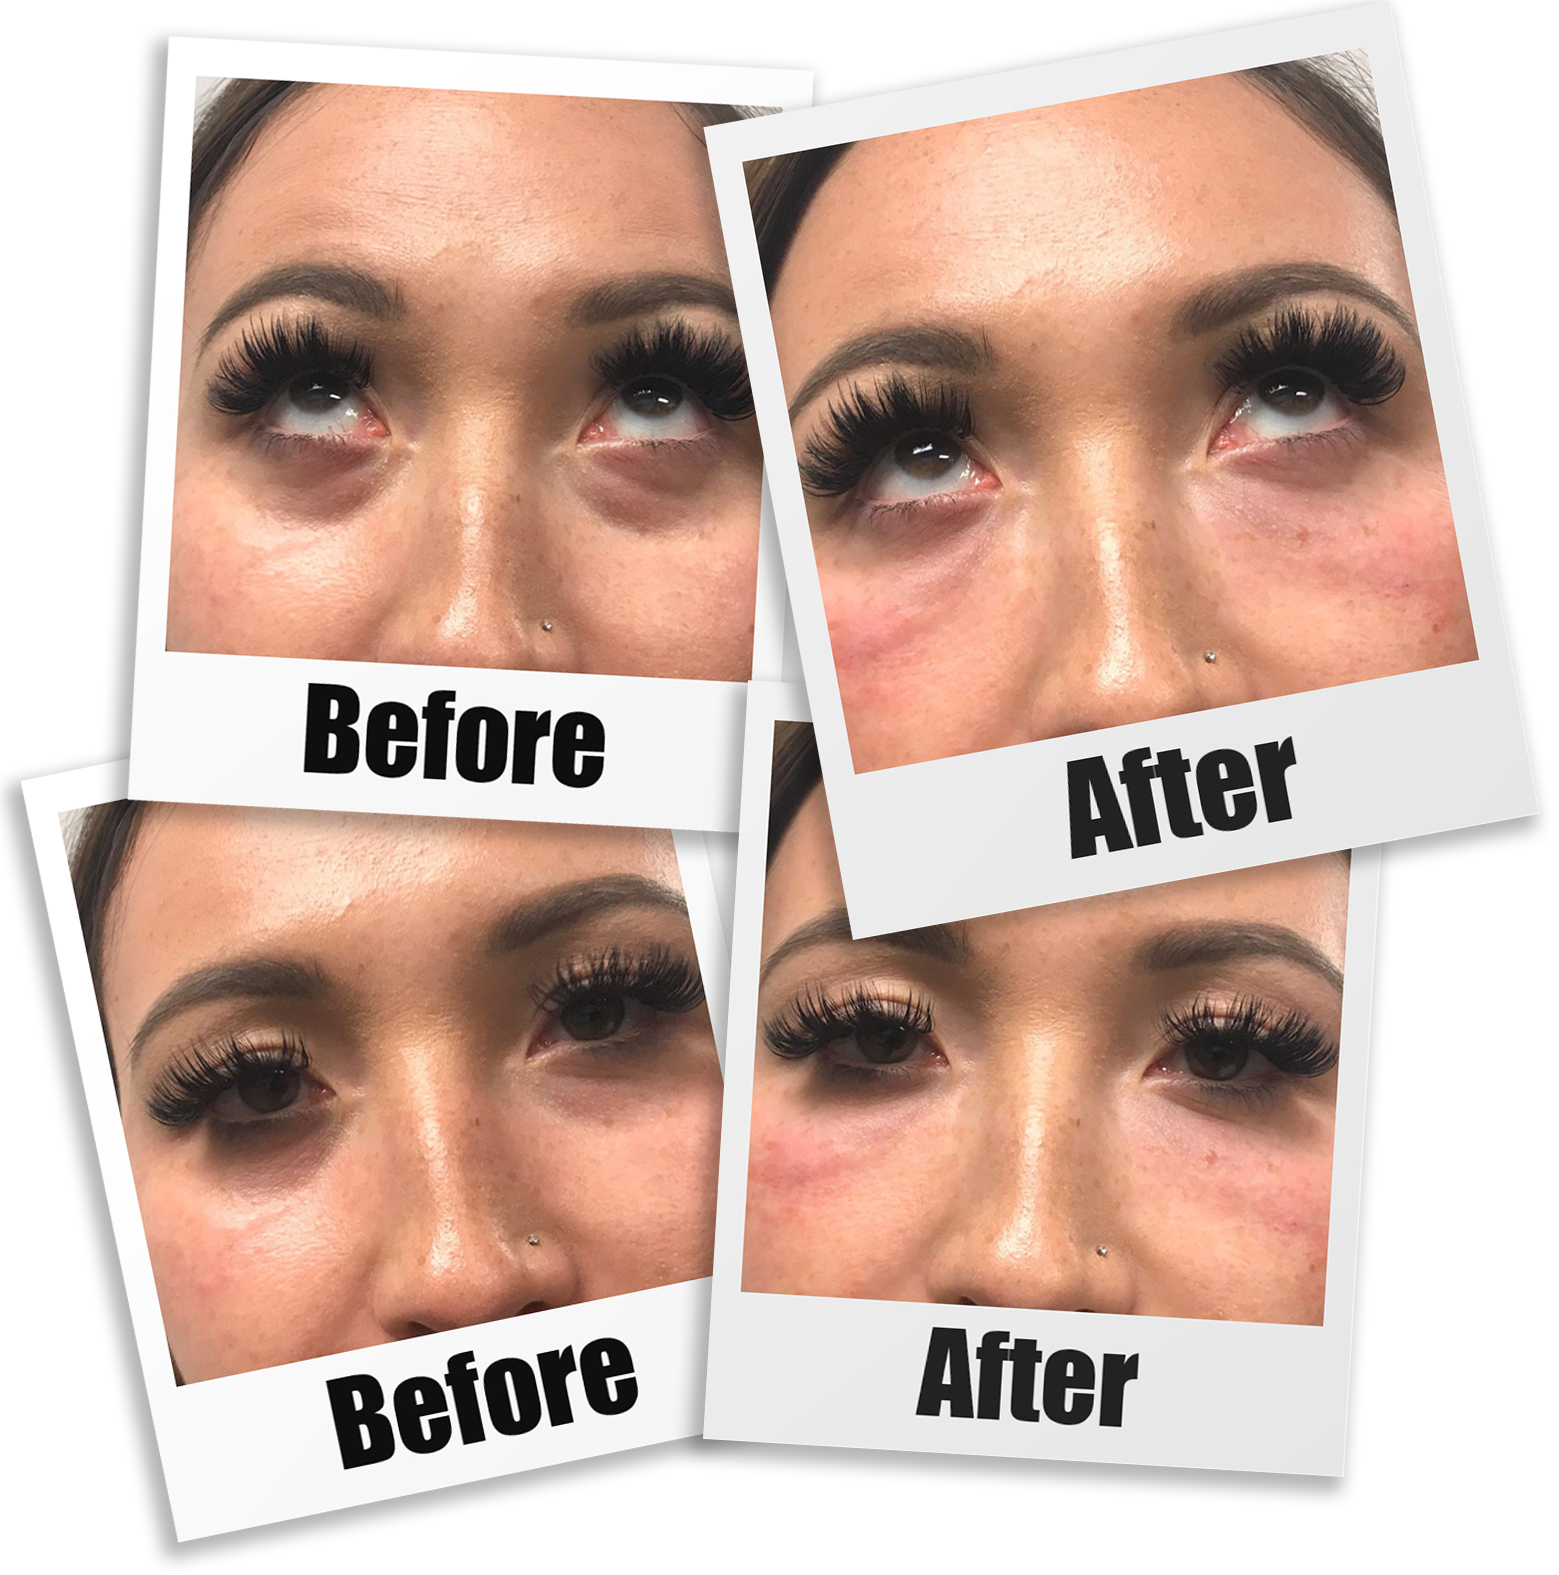 Before and After photos of PRP For Tear Trough Injections in Seattle, Bellevue, and Kirkland